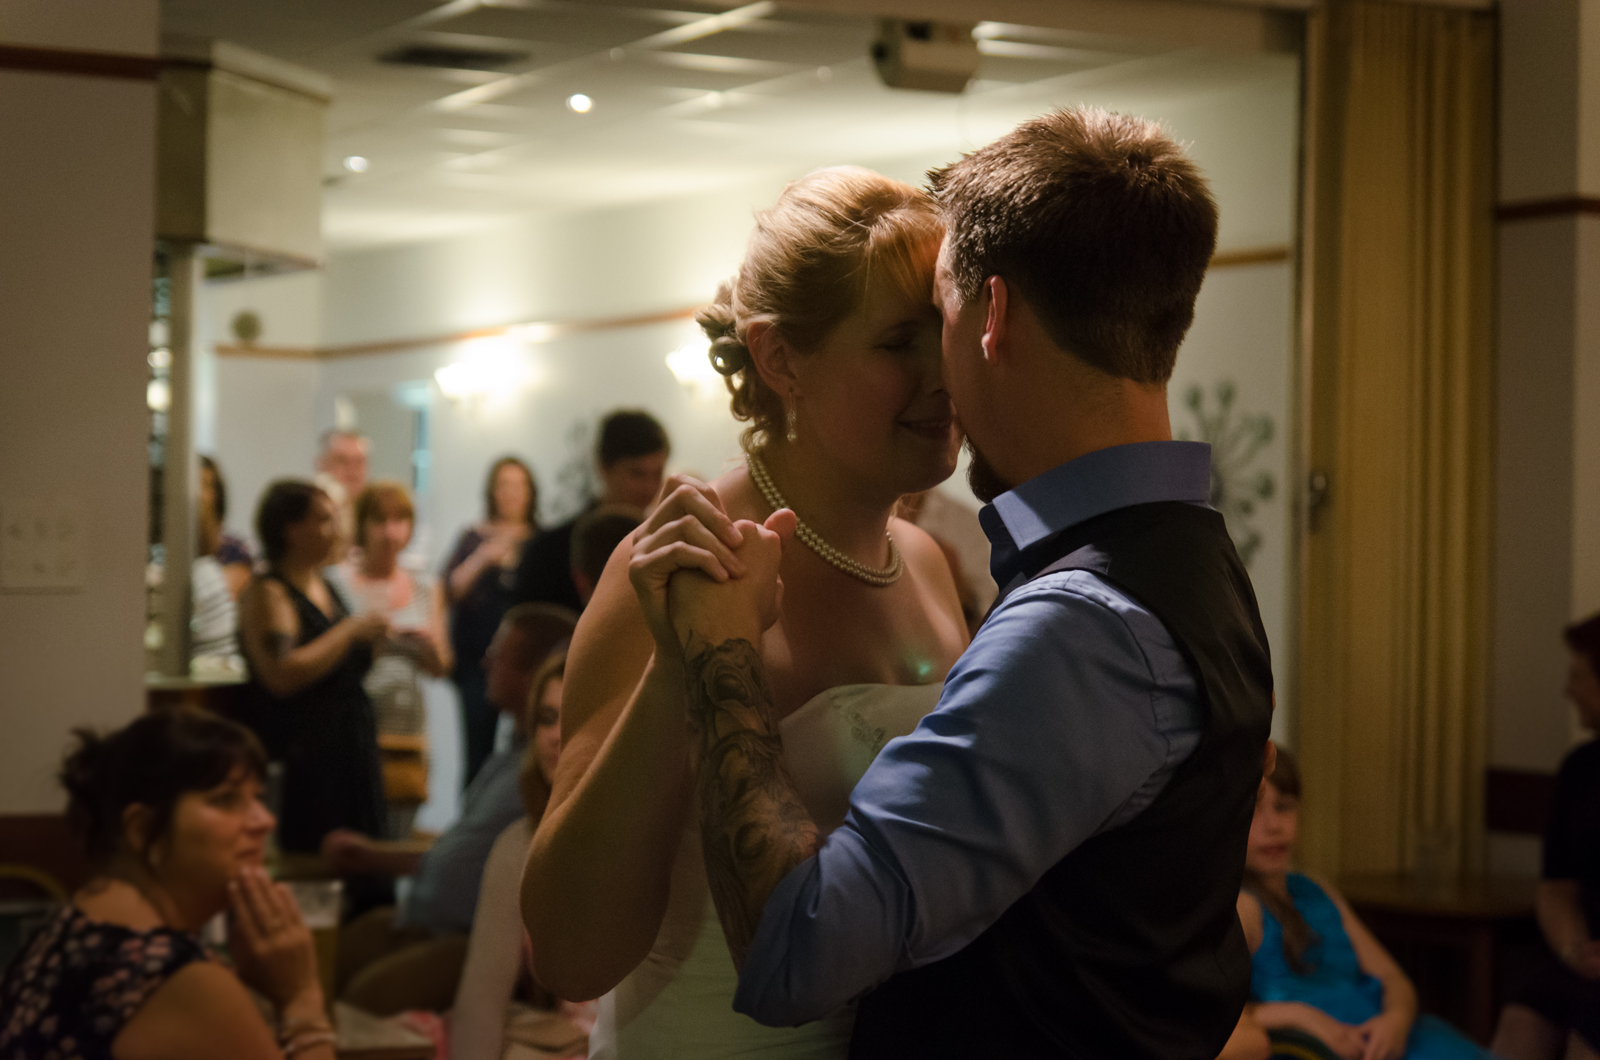 The tattooed groom and bride having their first dance